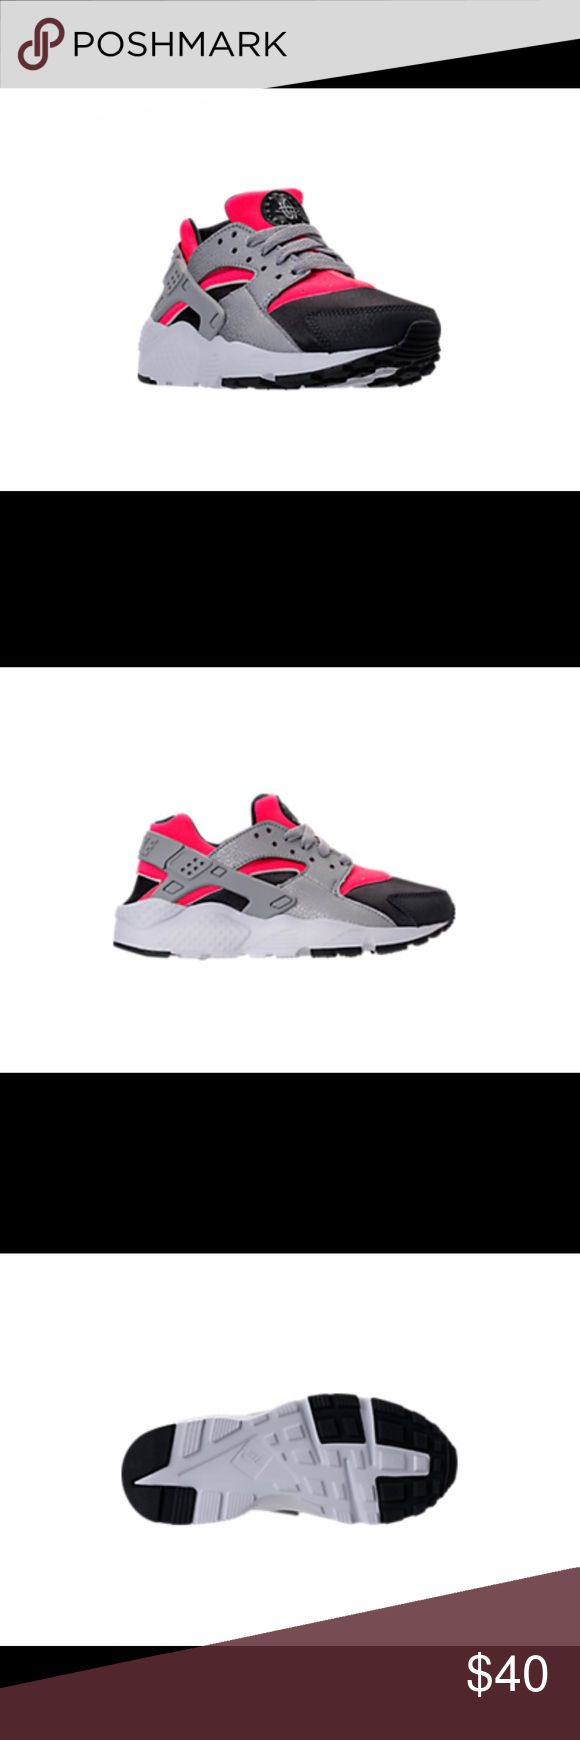 Brand new Nike Huarache Run Girls Nike Huarache Run Running Shoes Hot punch/wolf grey colors  Size 1Y UK 13.5 Nike Shoes Sneakers